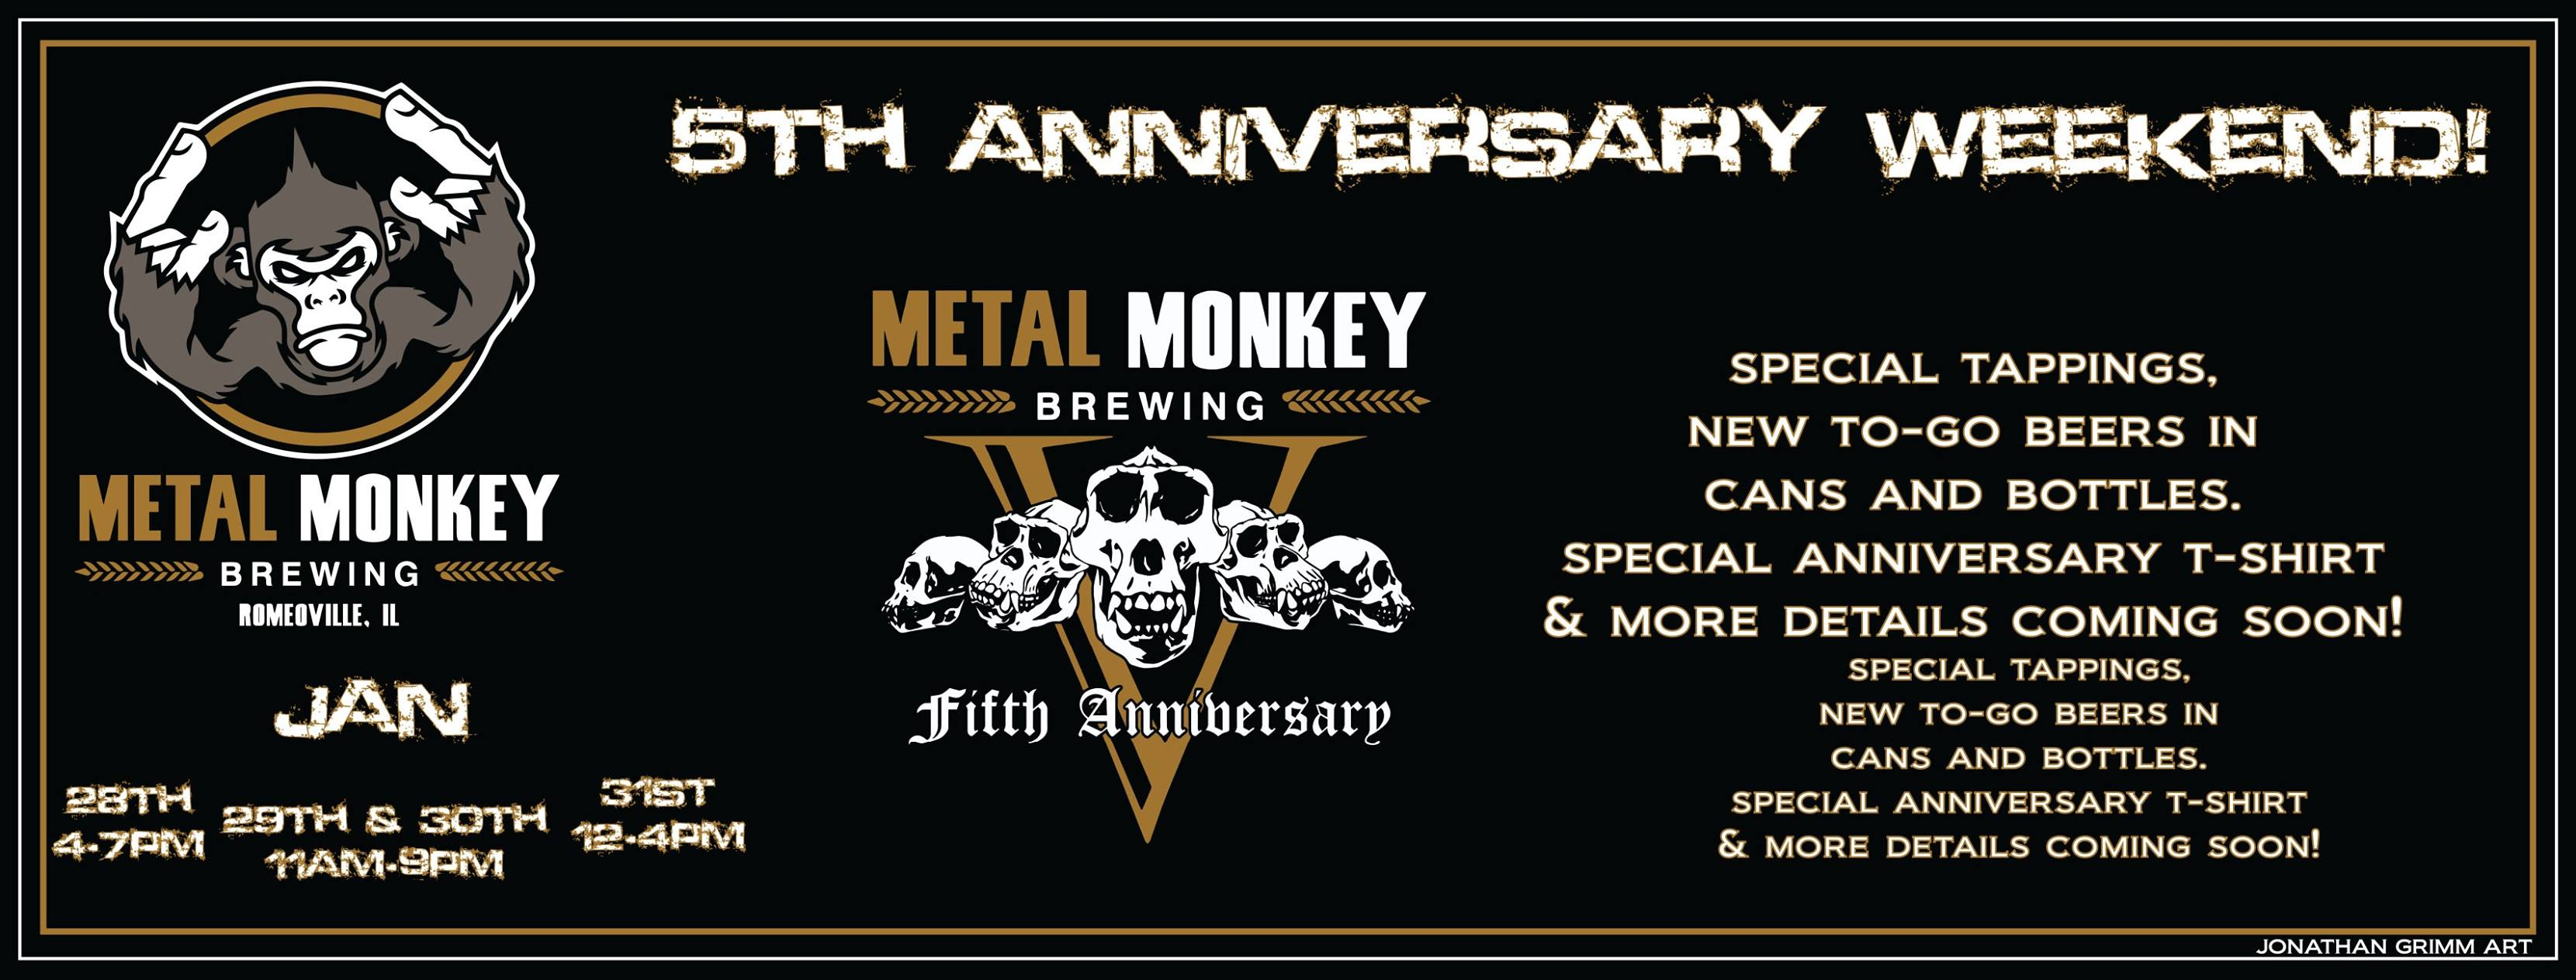 Graphic promoting Metal Monkey's Fifth Anniversary